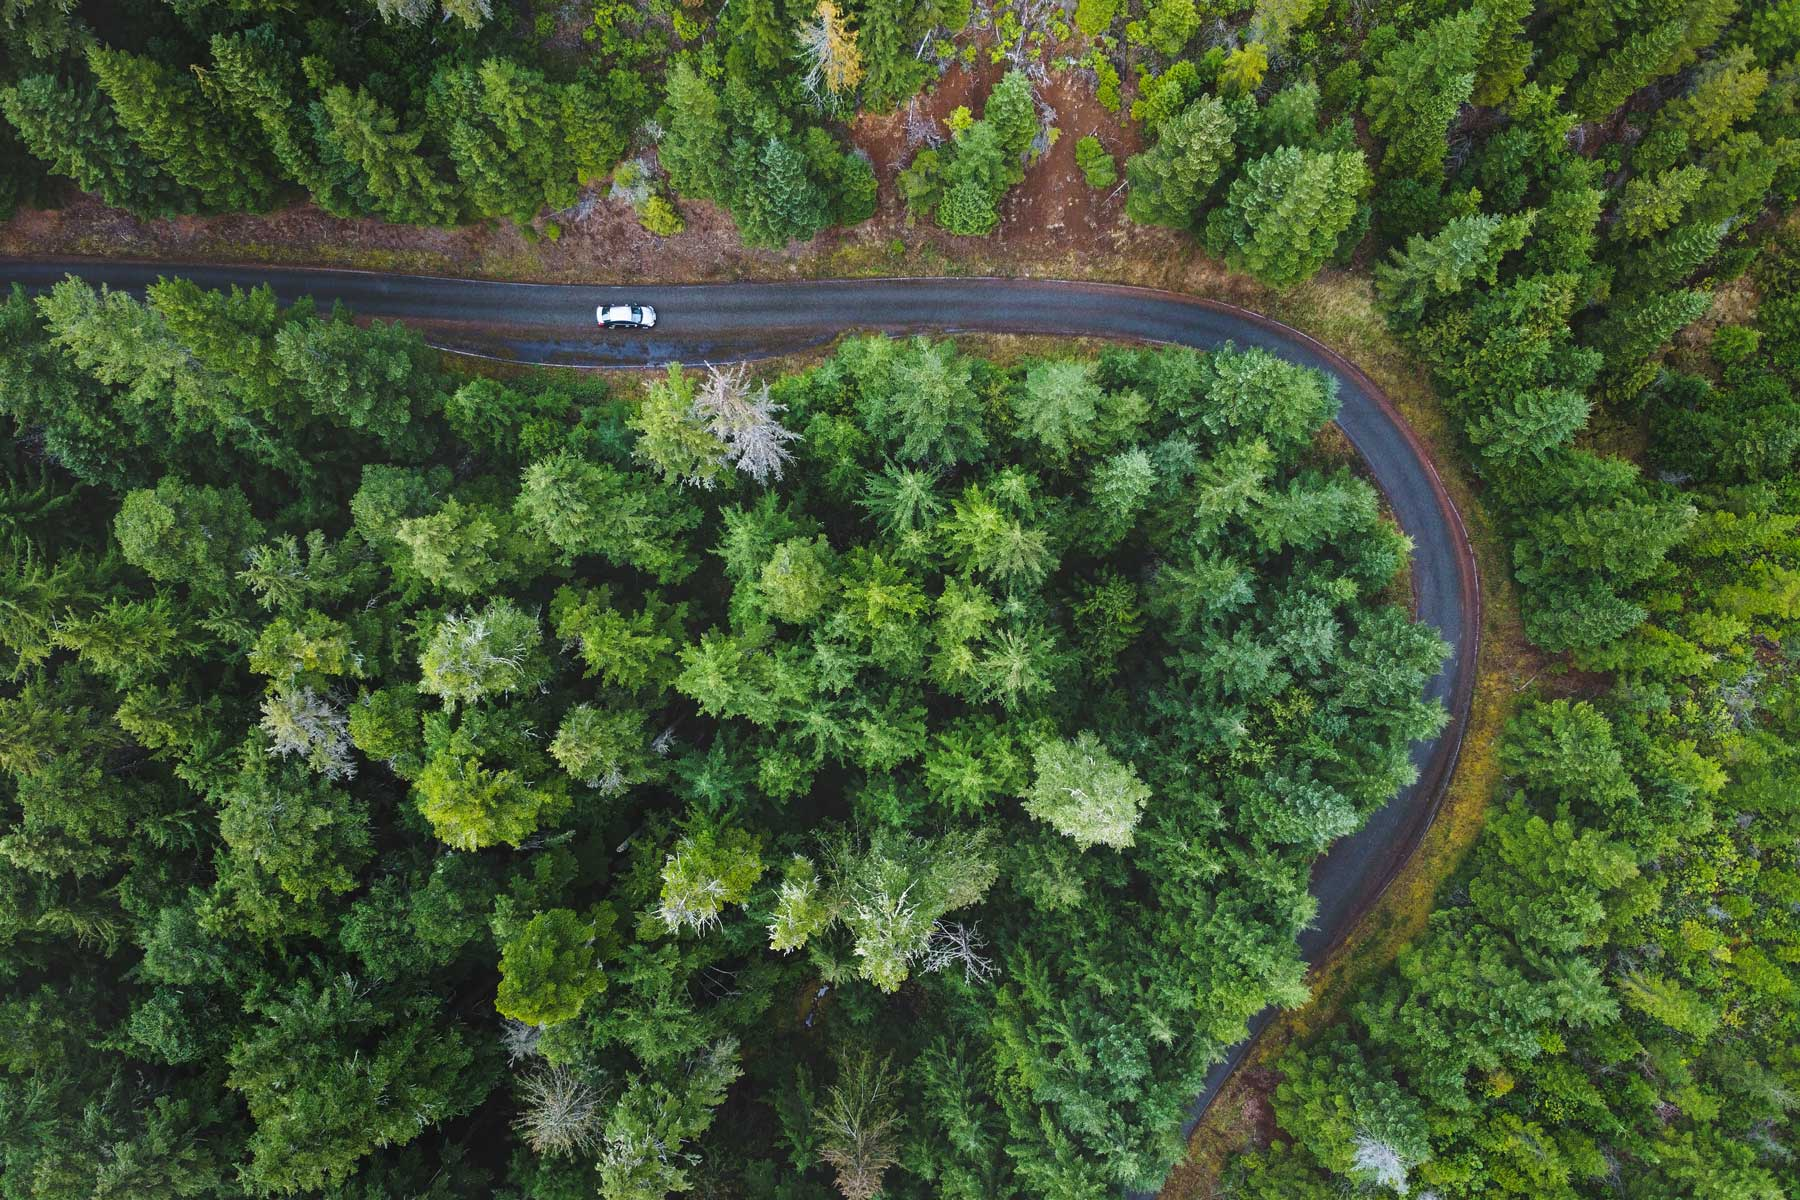 Road winding through pine trees from above